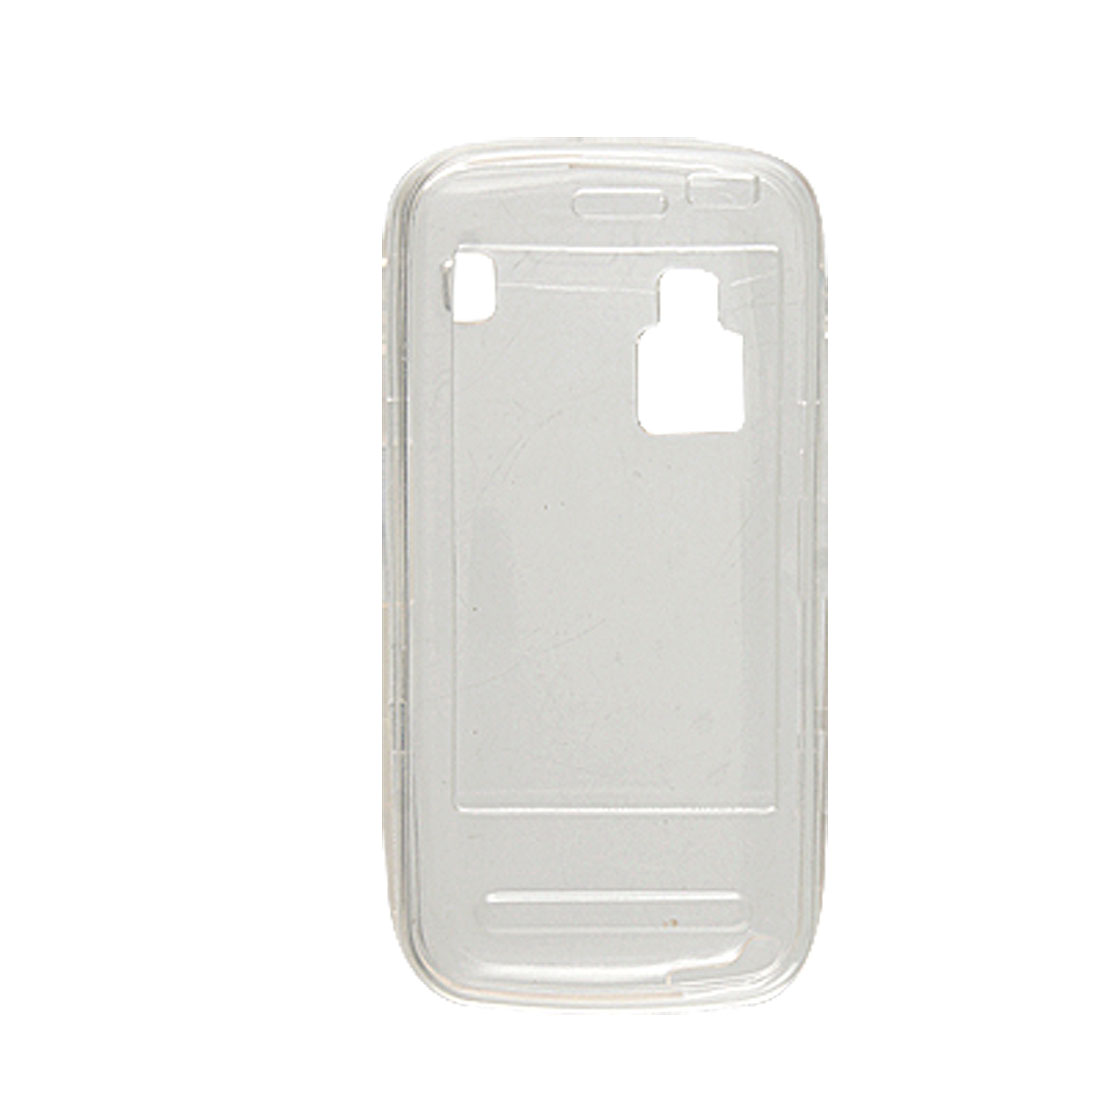 Detachable Clear Soft Plastic Case Guard for Nokia C6